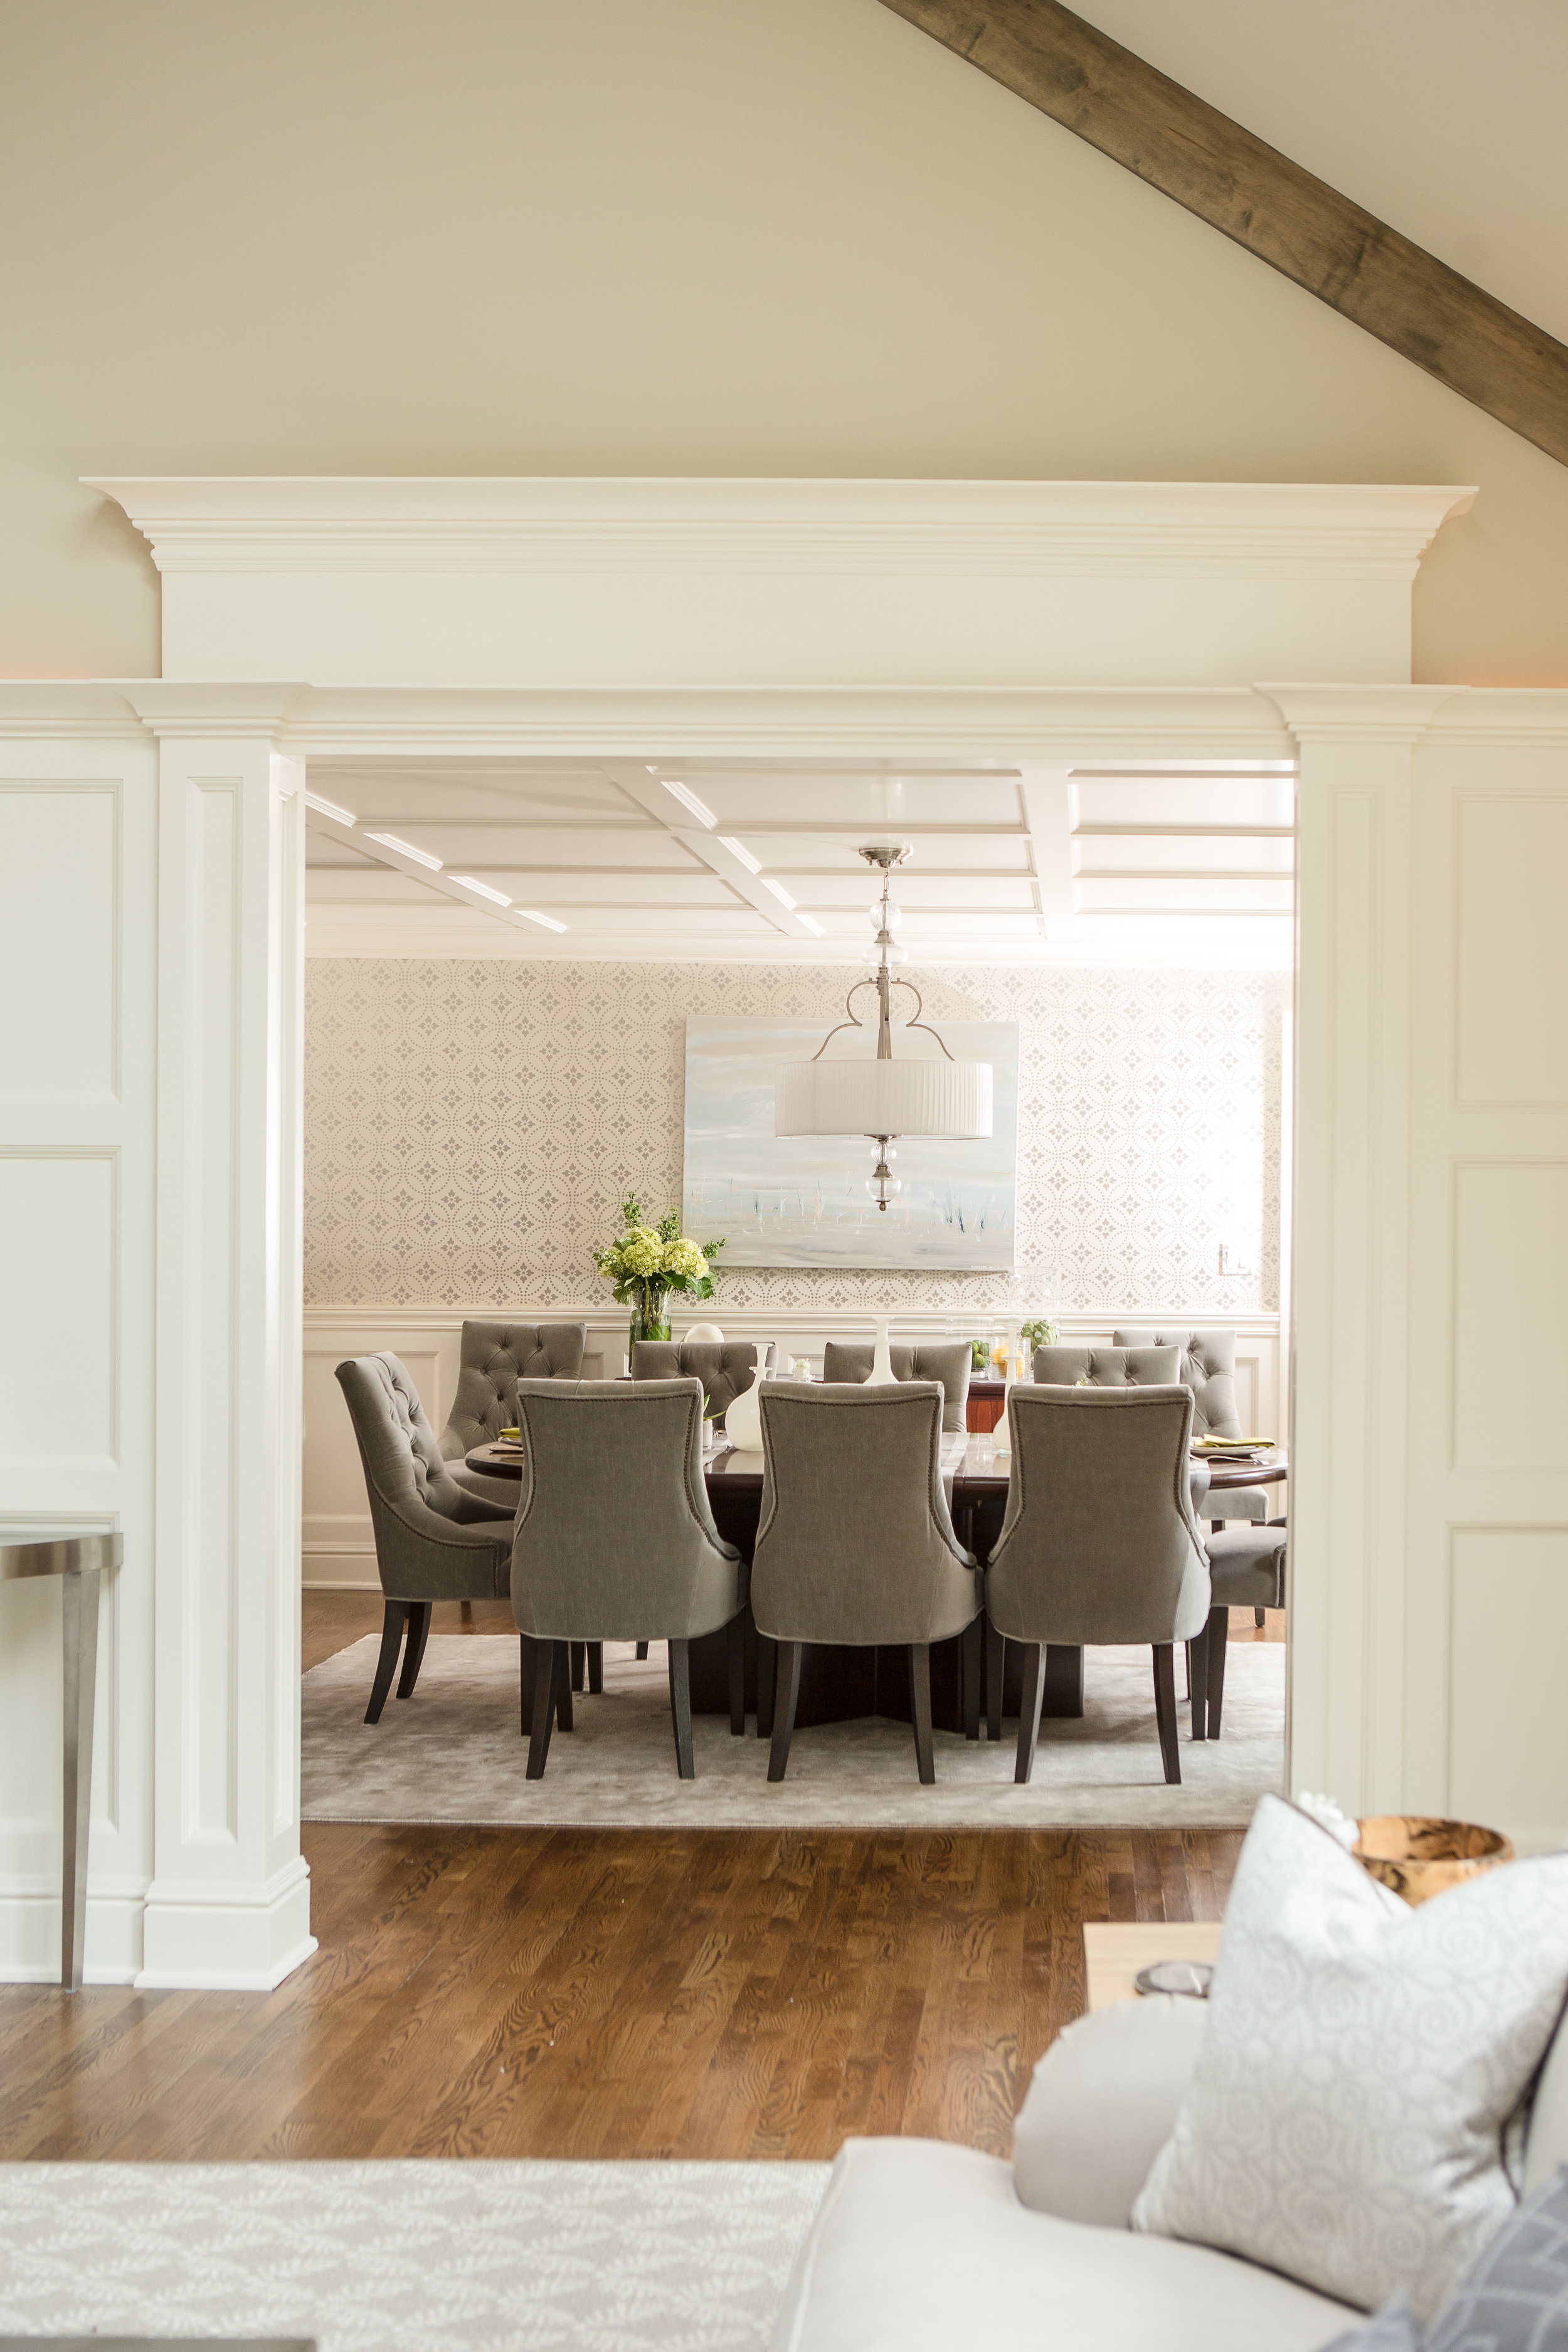 DINING ROOM - WAINSCOTING